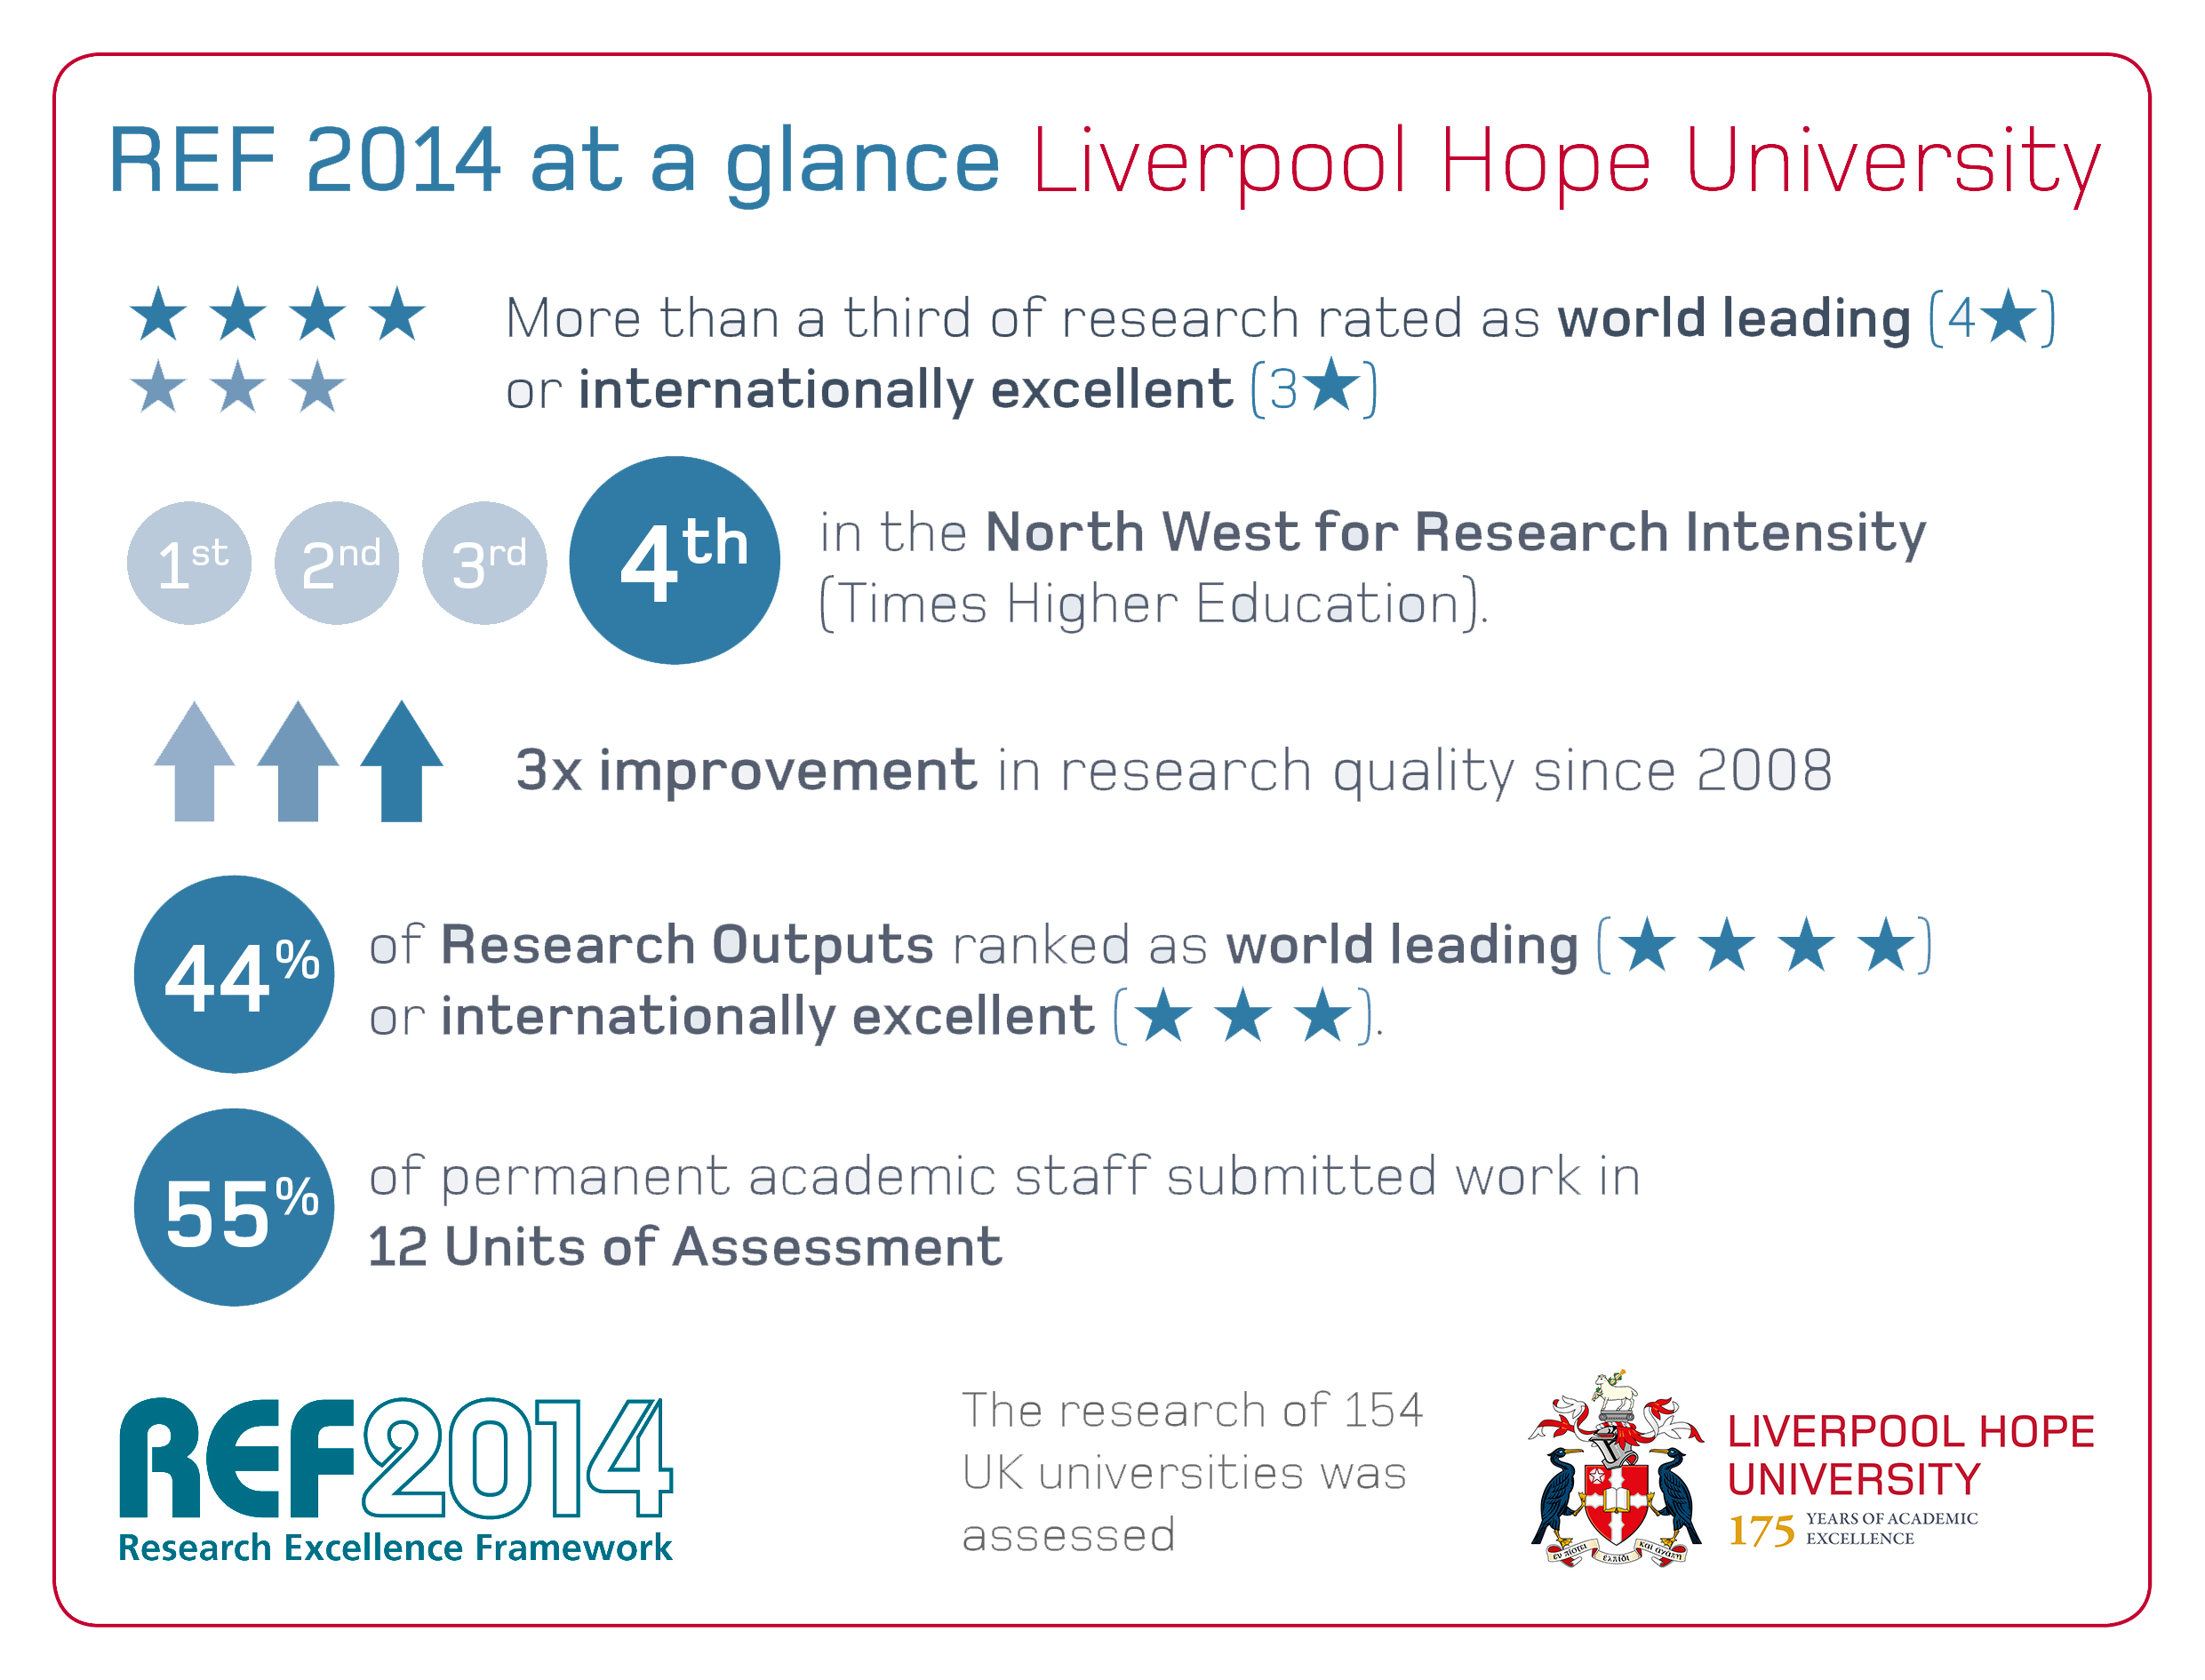 REF 2014 At A Glance Graphic